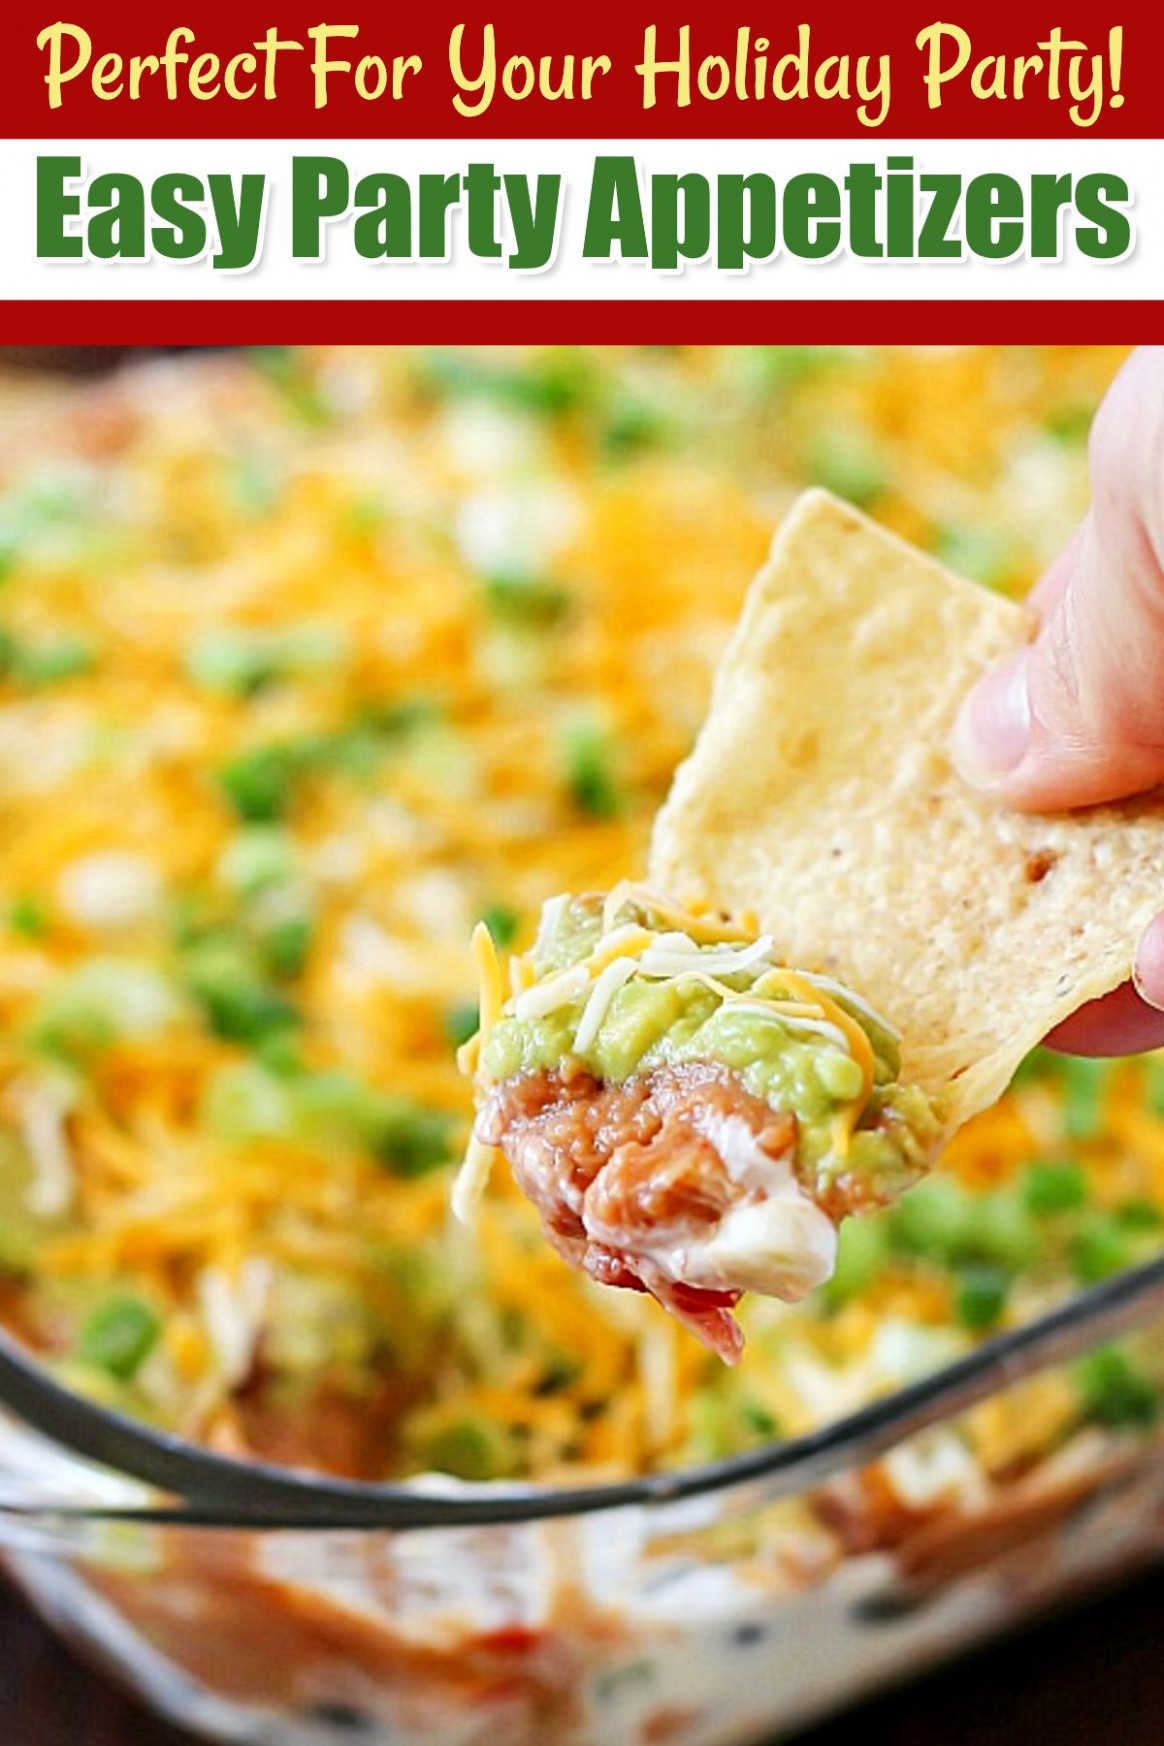 Easy Party Appetizers For a Crowd - 15 Insanely Good Crowd ..